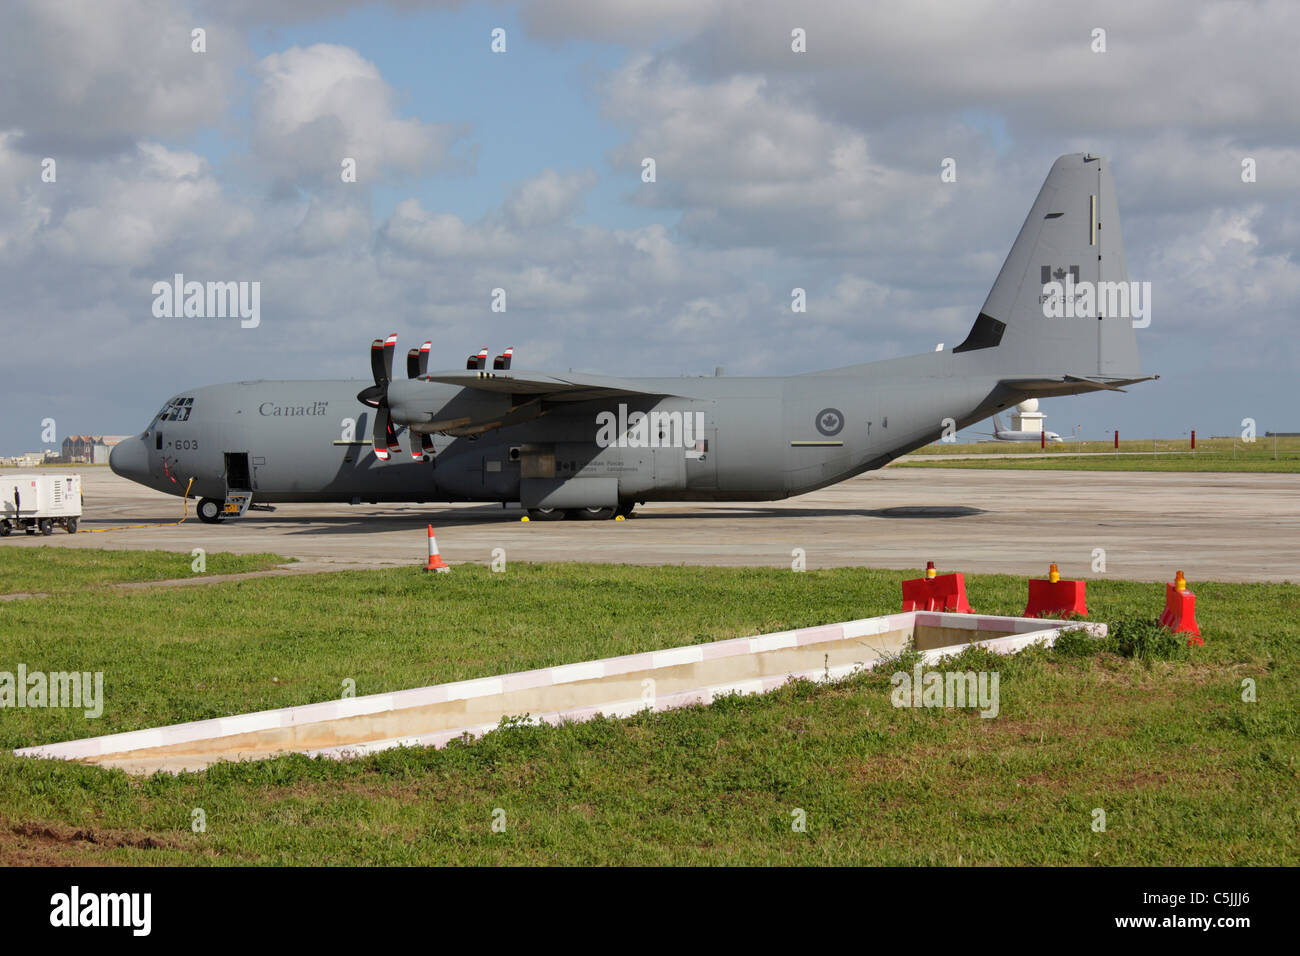 Lockheed Martin C-130J-30 Hercules military transport plane of the Canadian Armed Forces parked in Malta - Stock Image